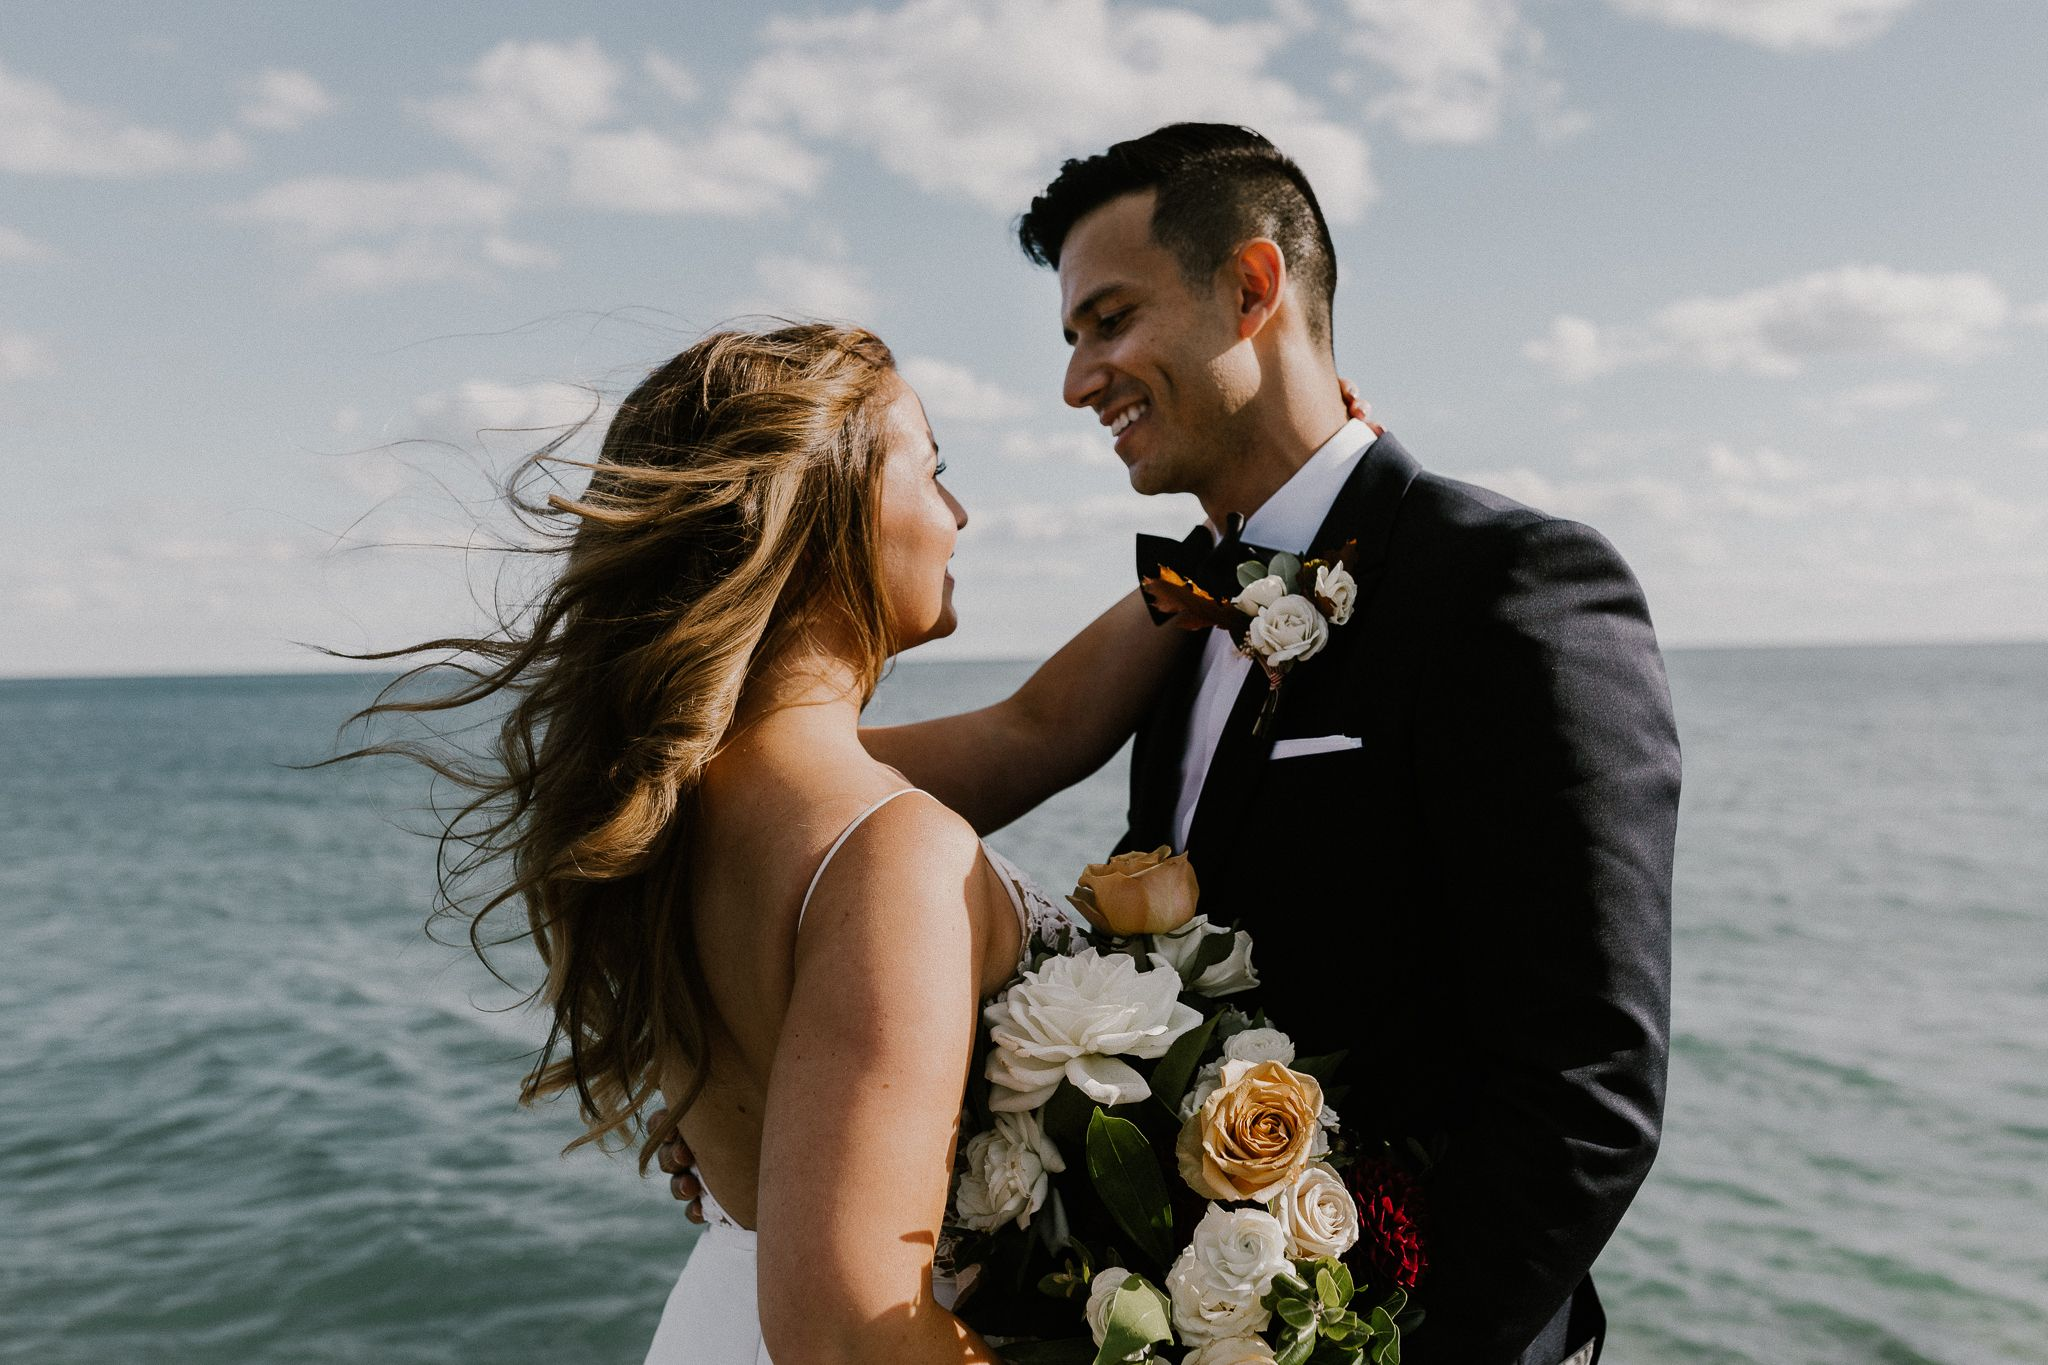 Toronto Wedding couple by the sea at R.C. Harris Water Treatment plan with the wind in their hair and bouquet.